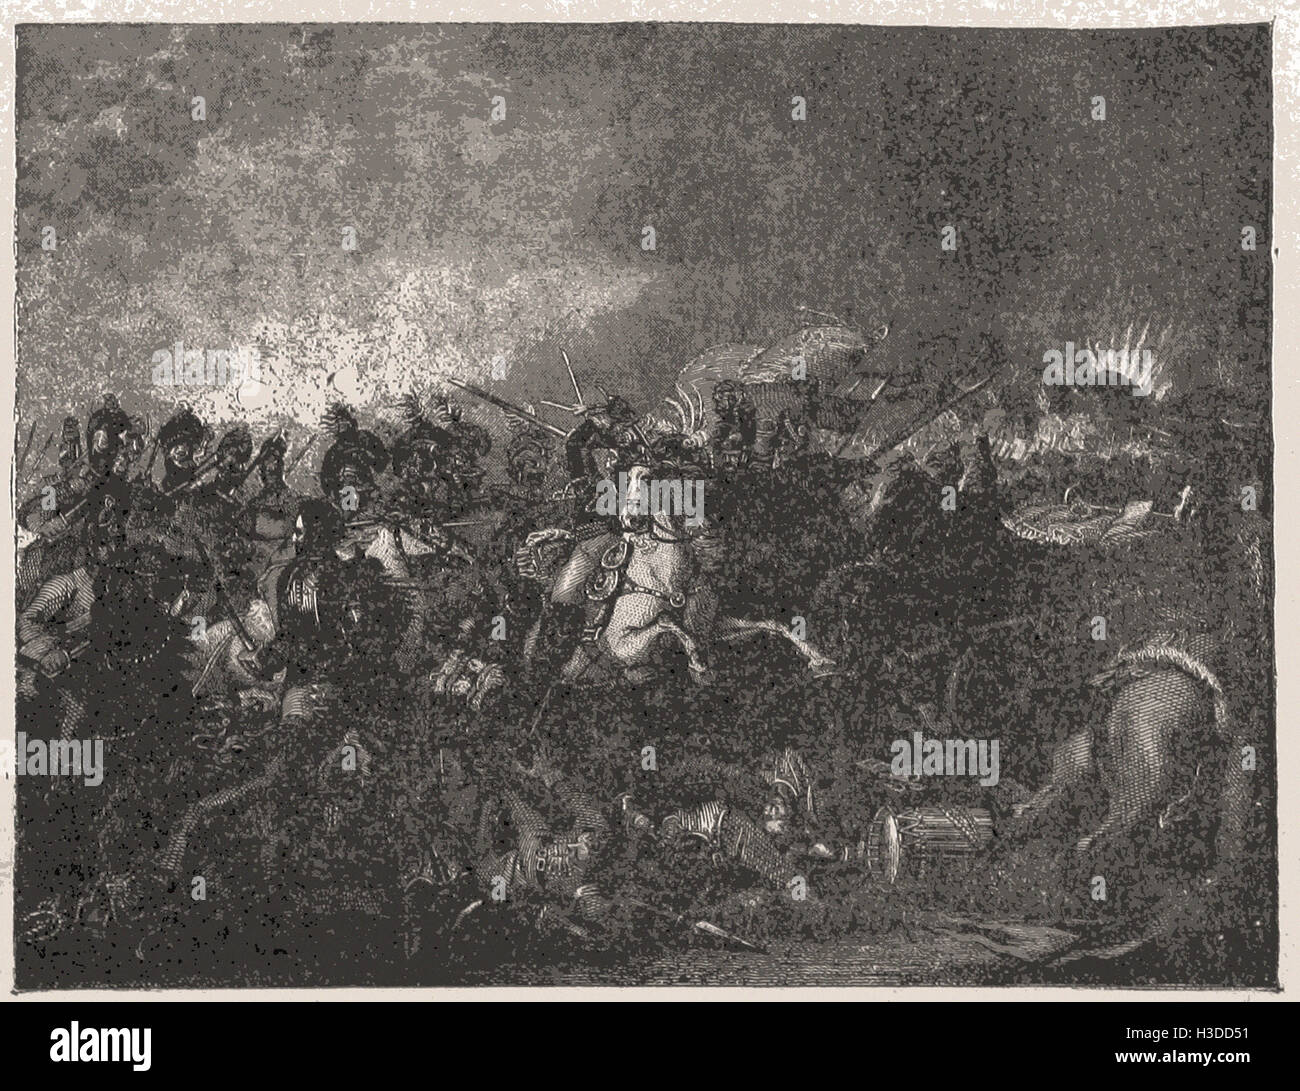 CHARGE OF THE BRIT1SH CAVALRY AT WATERLOO, JUNE 18, 1815 - Stock Image